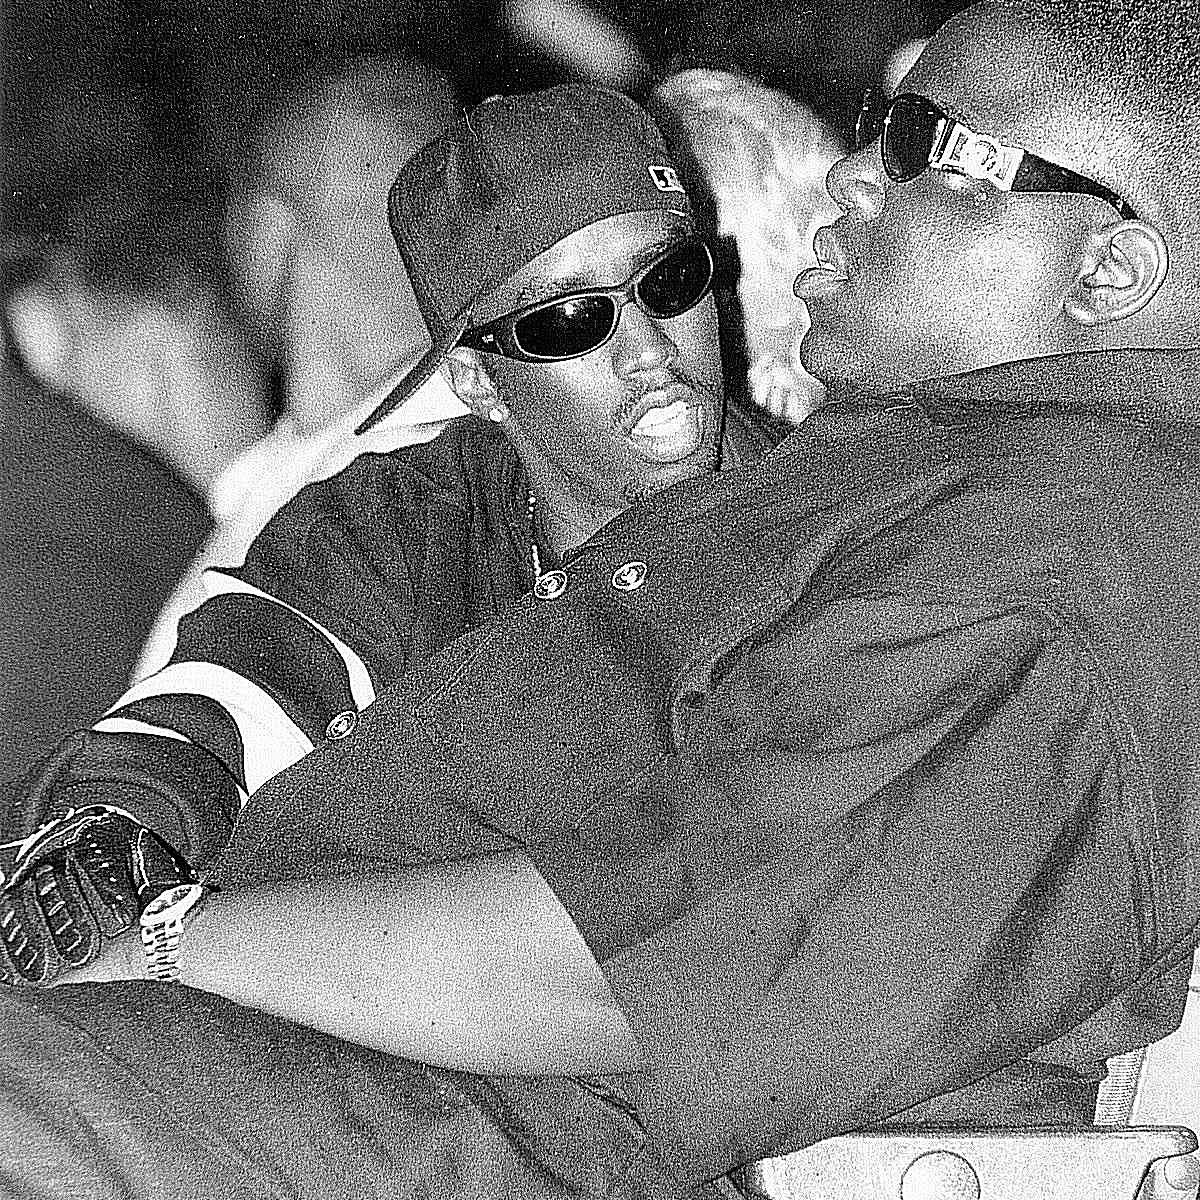 Candid photo of Puff Daddy and Biggie Smalls